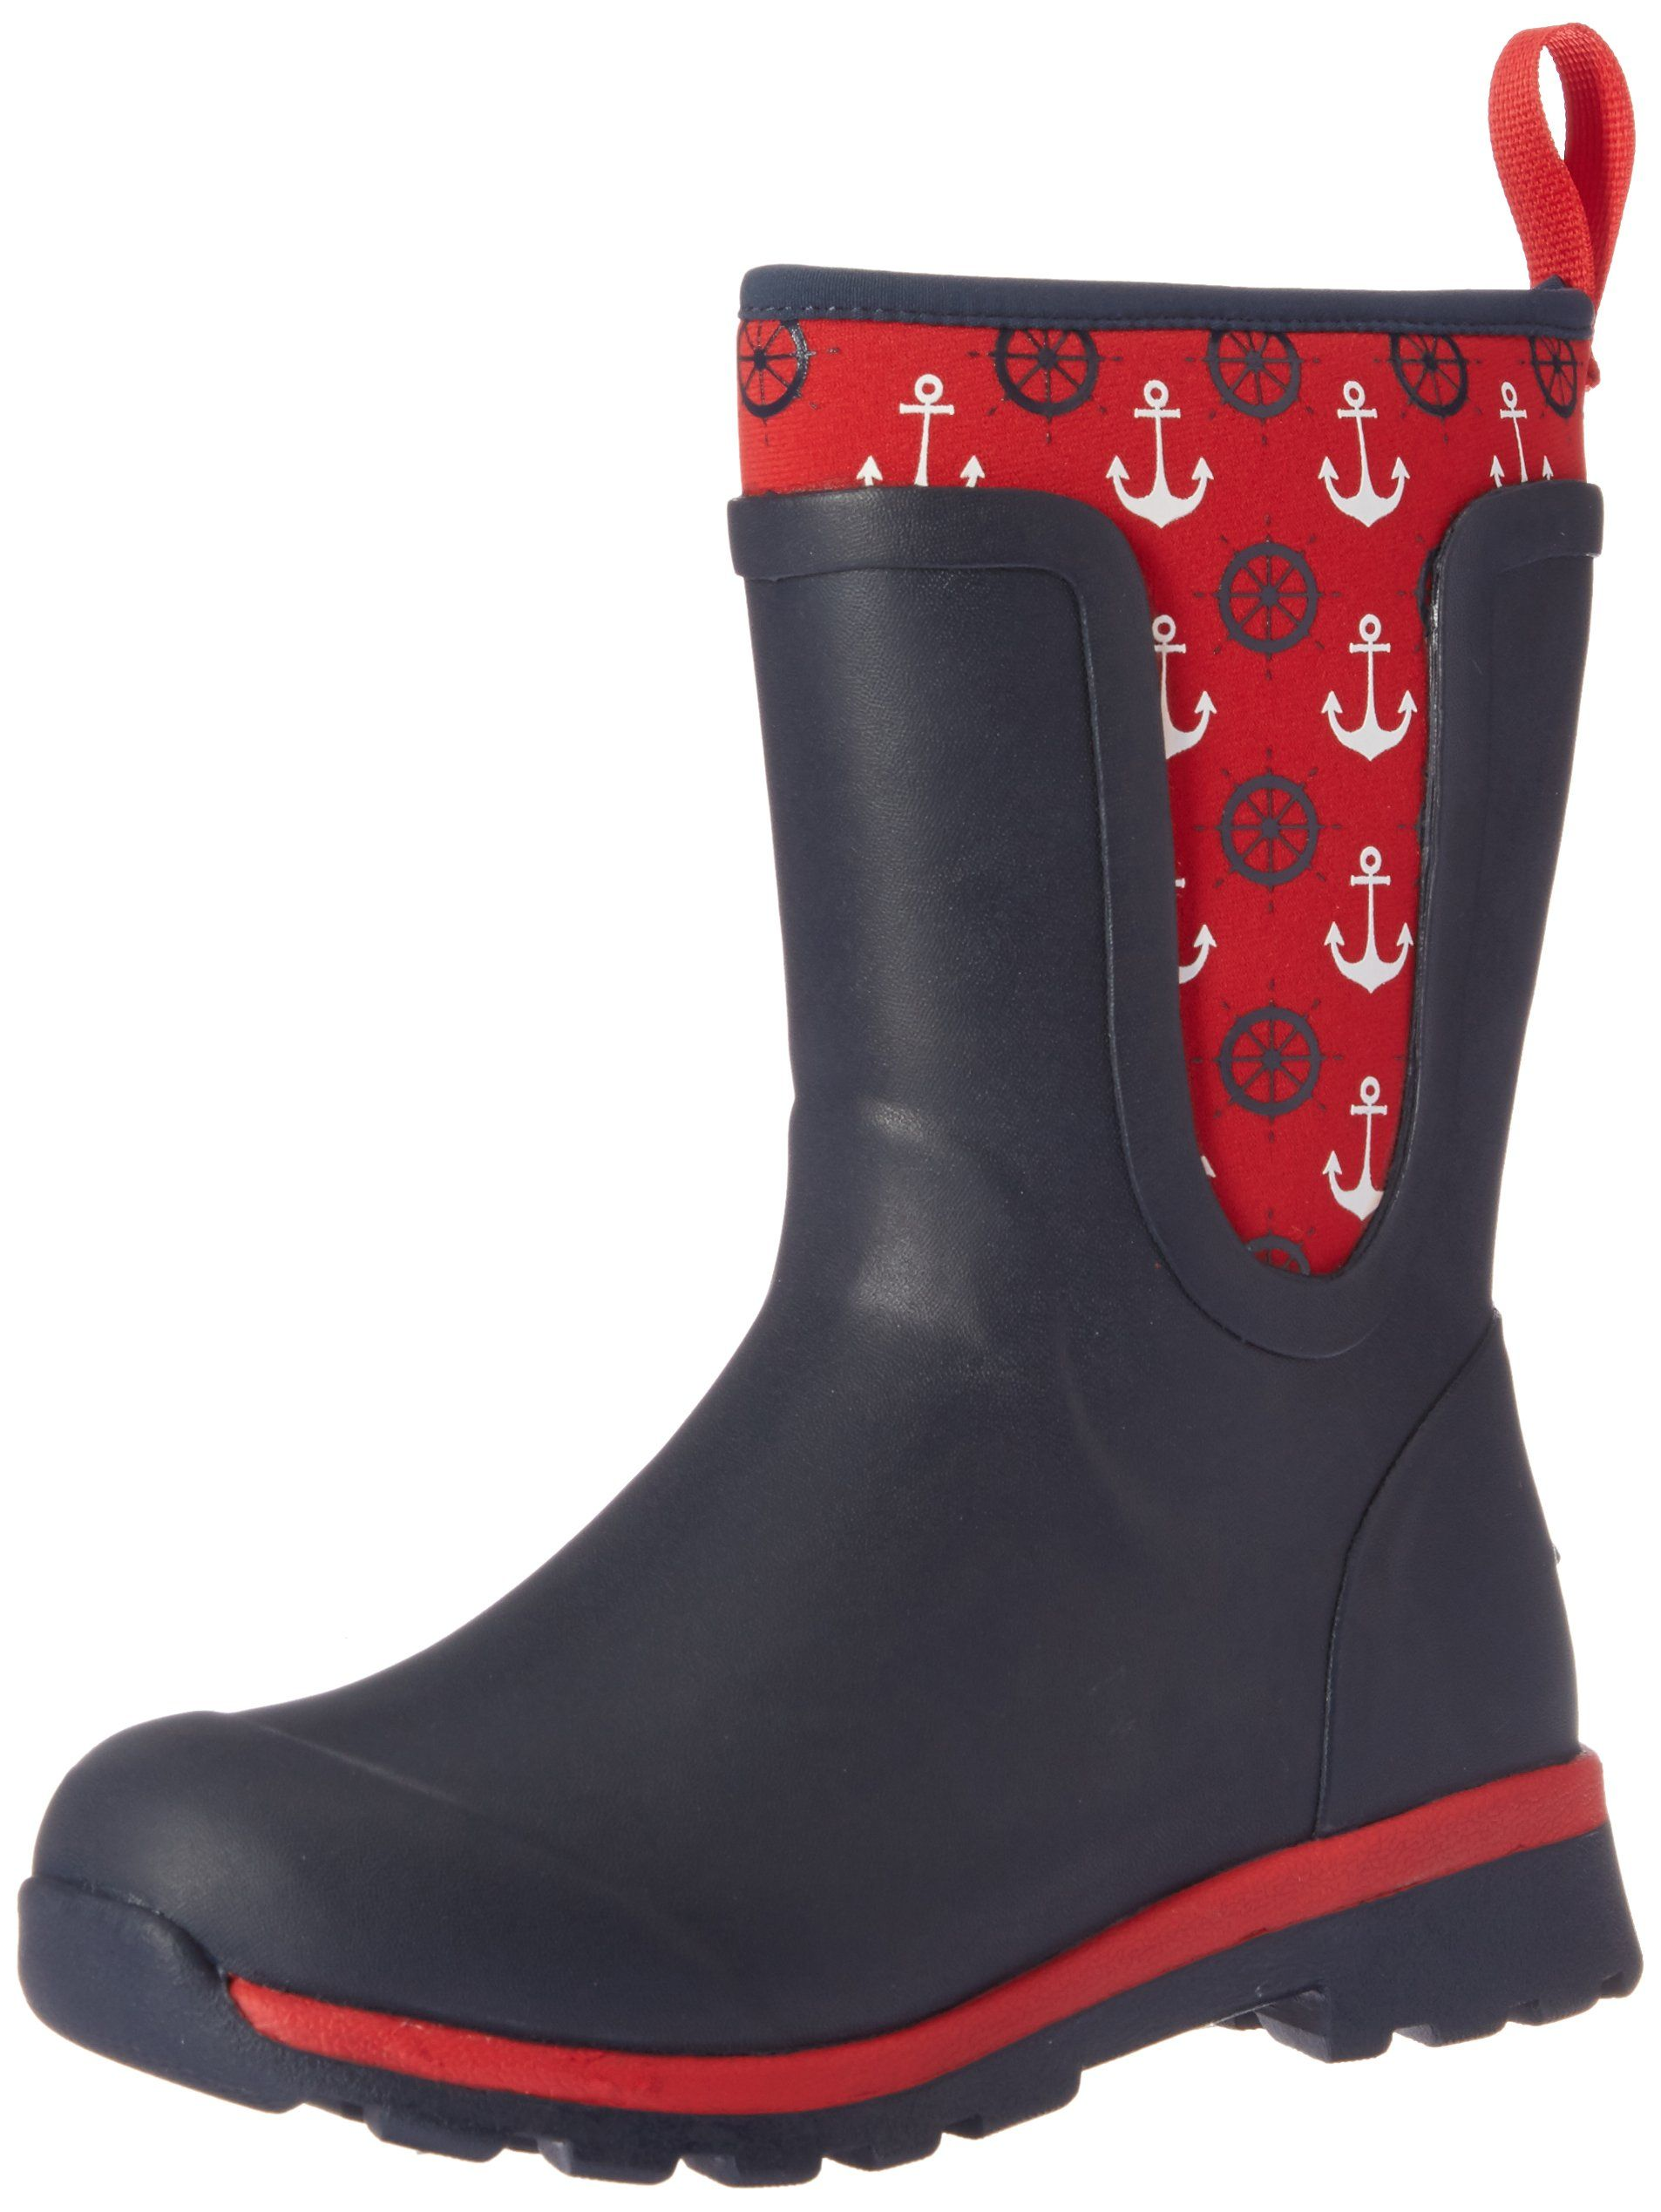 Muck Boot's Navy/Anchors Youth's Cambridge Boot with PK Mesh Lining - Size 9 CVilf3